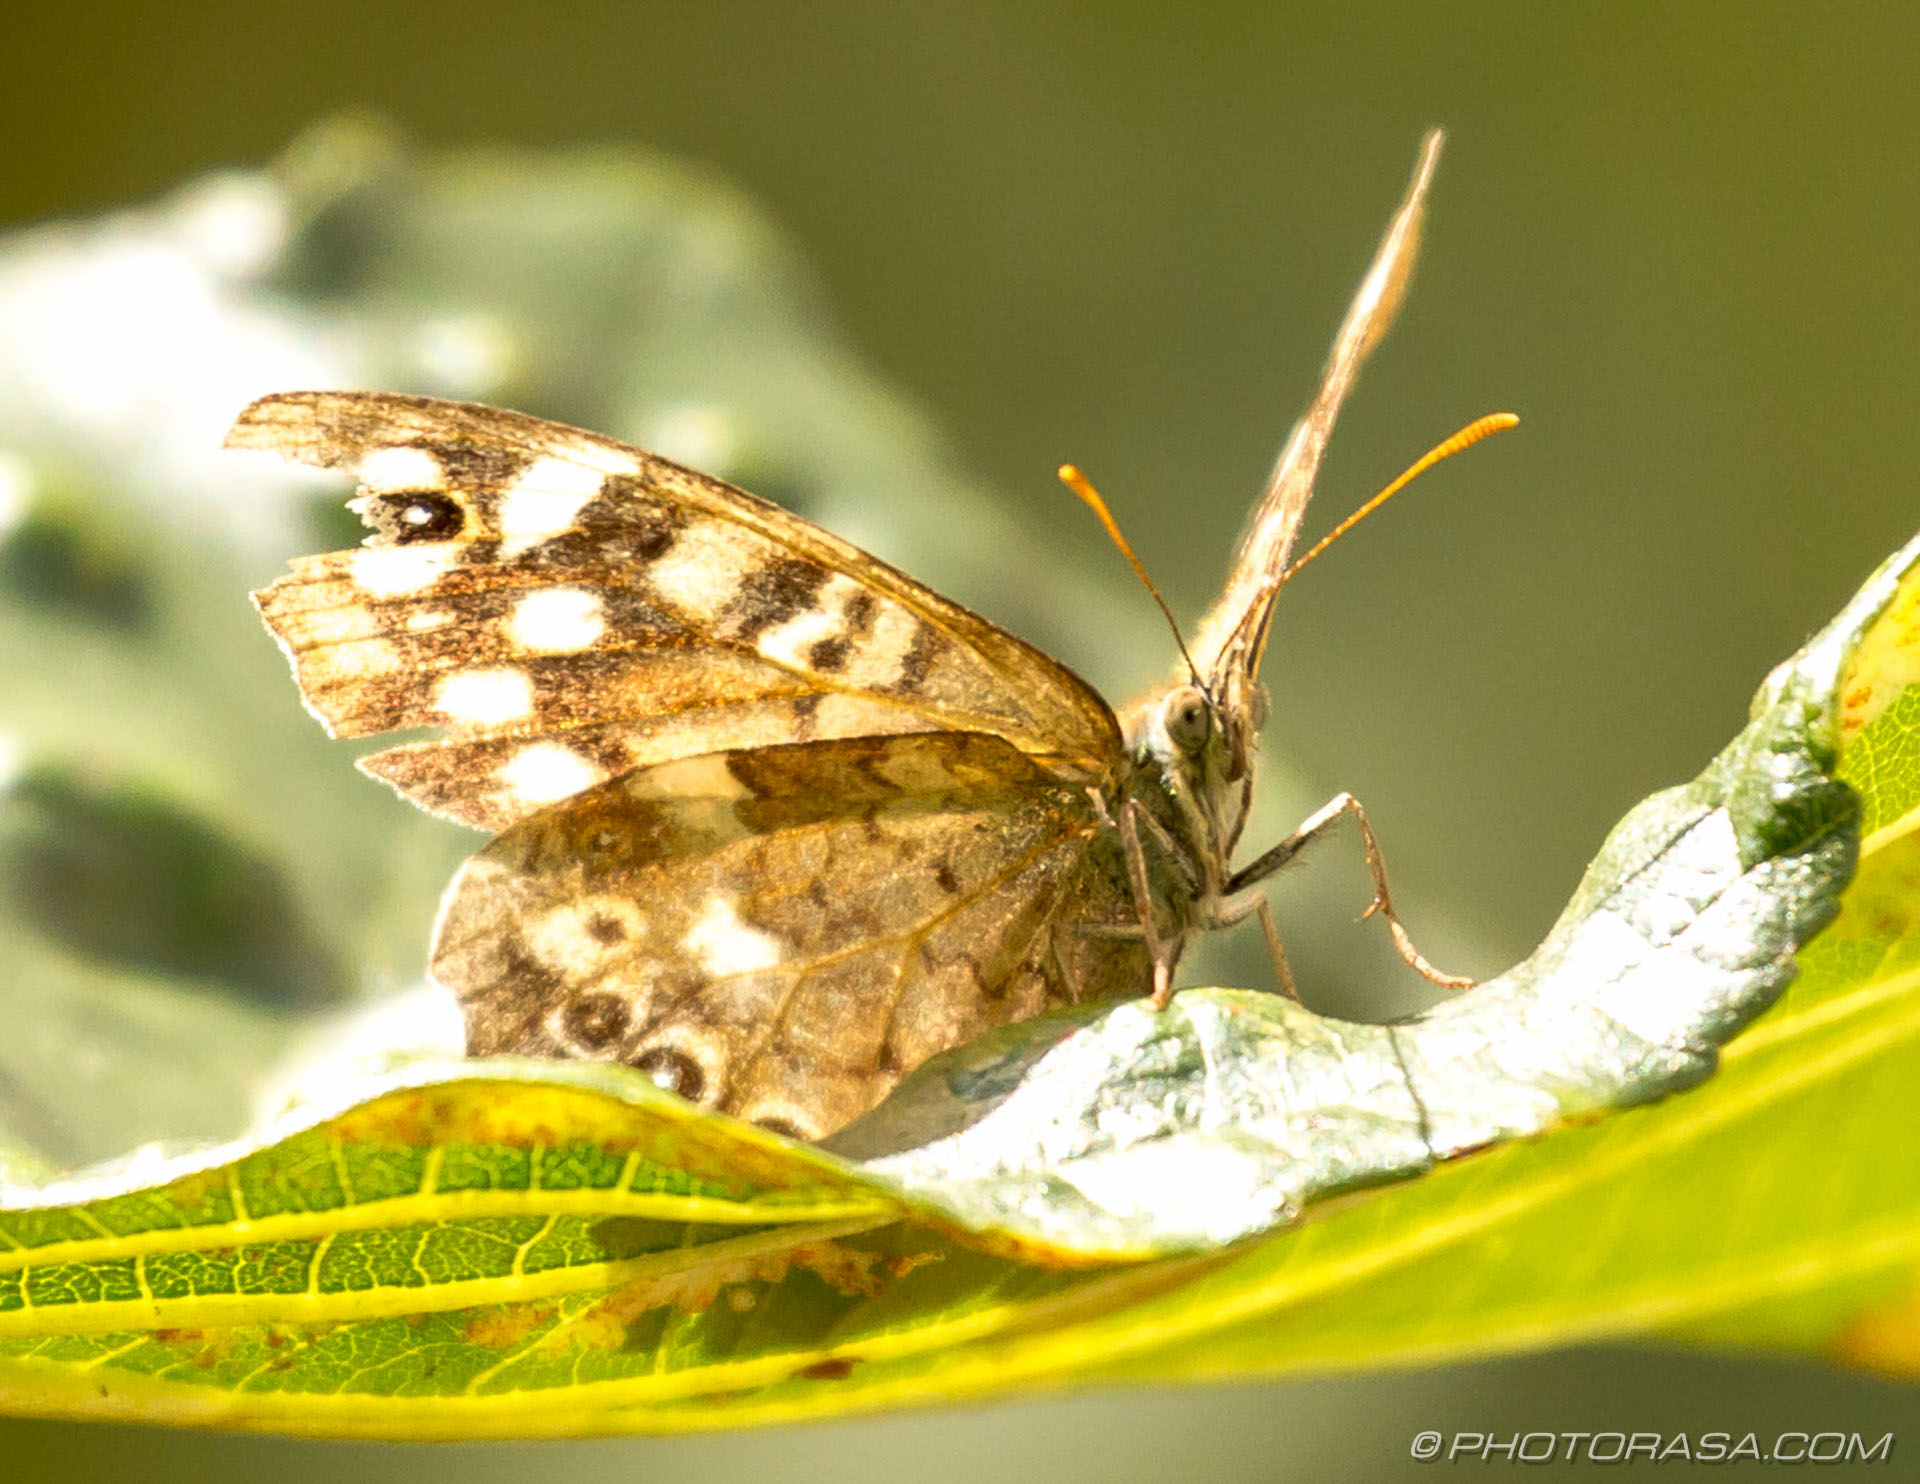 https://photorasa.com/speckled-wood-butterfly/with-damaged-wing/